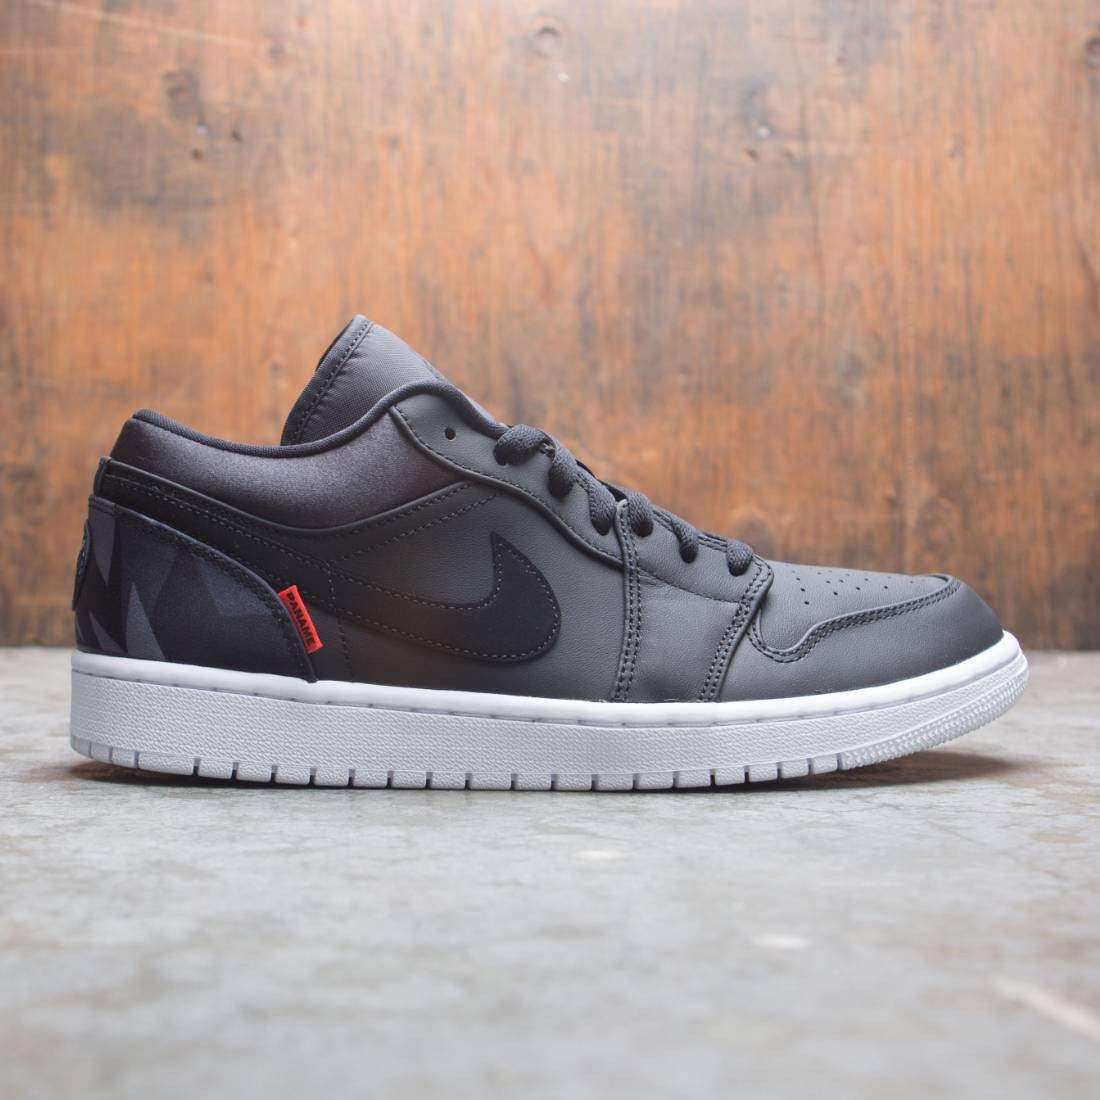 Jordan Men Air Jordan 1 Low Paris Saint Germain Black Black Dark